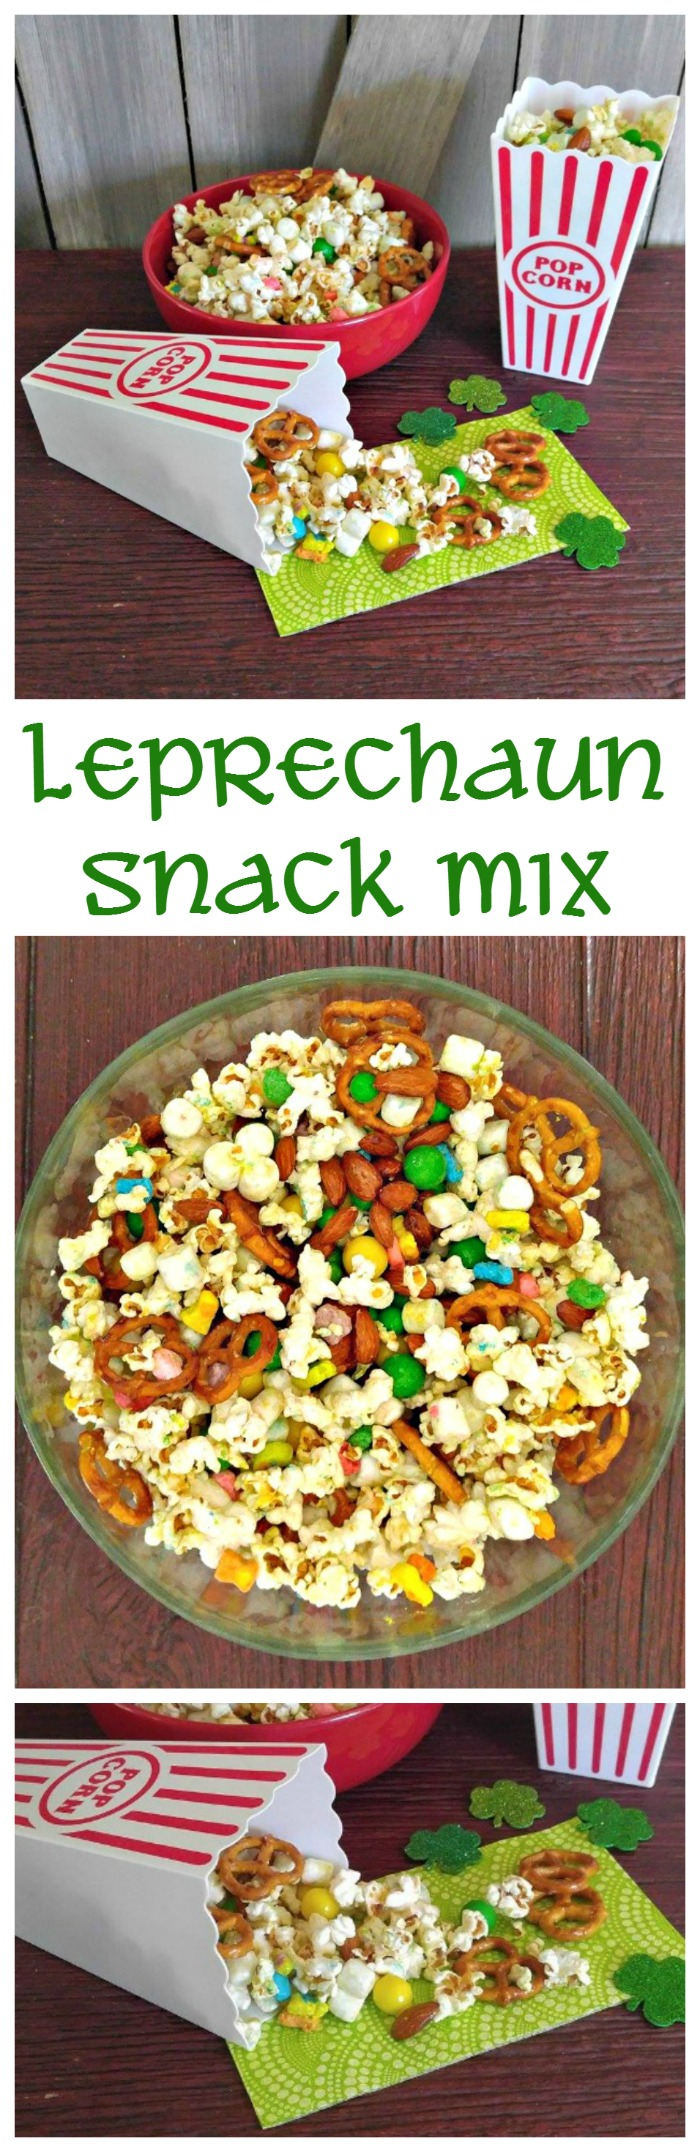 This Leprechaun snack mix is the prefect sweet and salty party treat. It is easy to make and fun to serve.